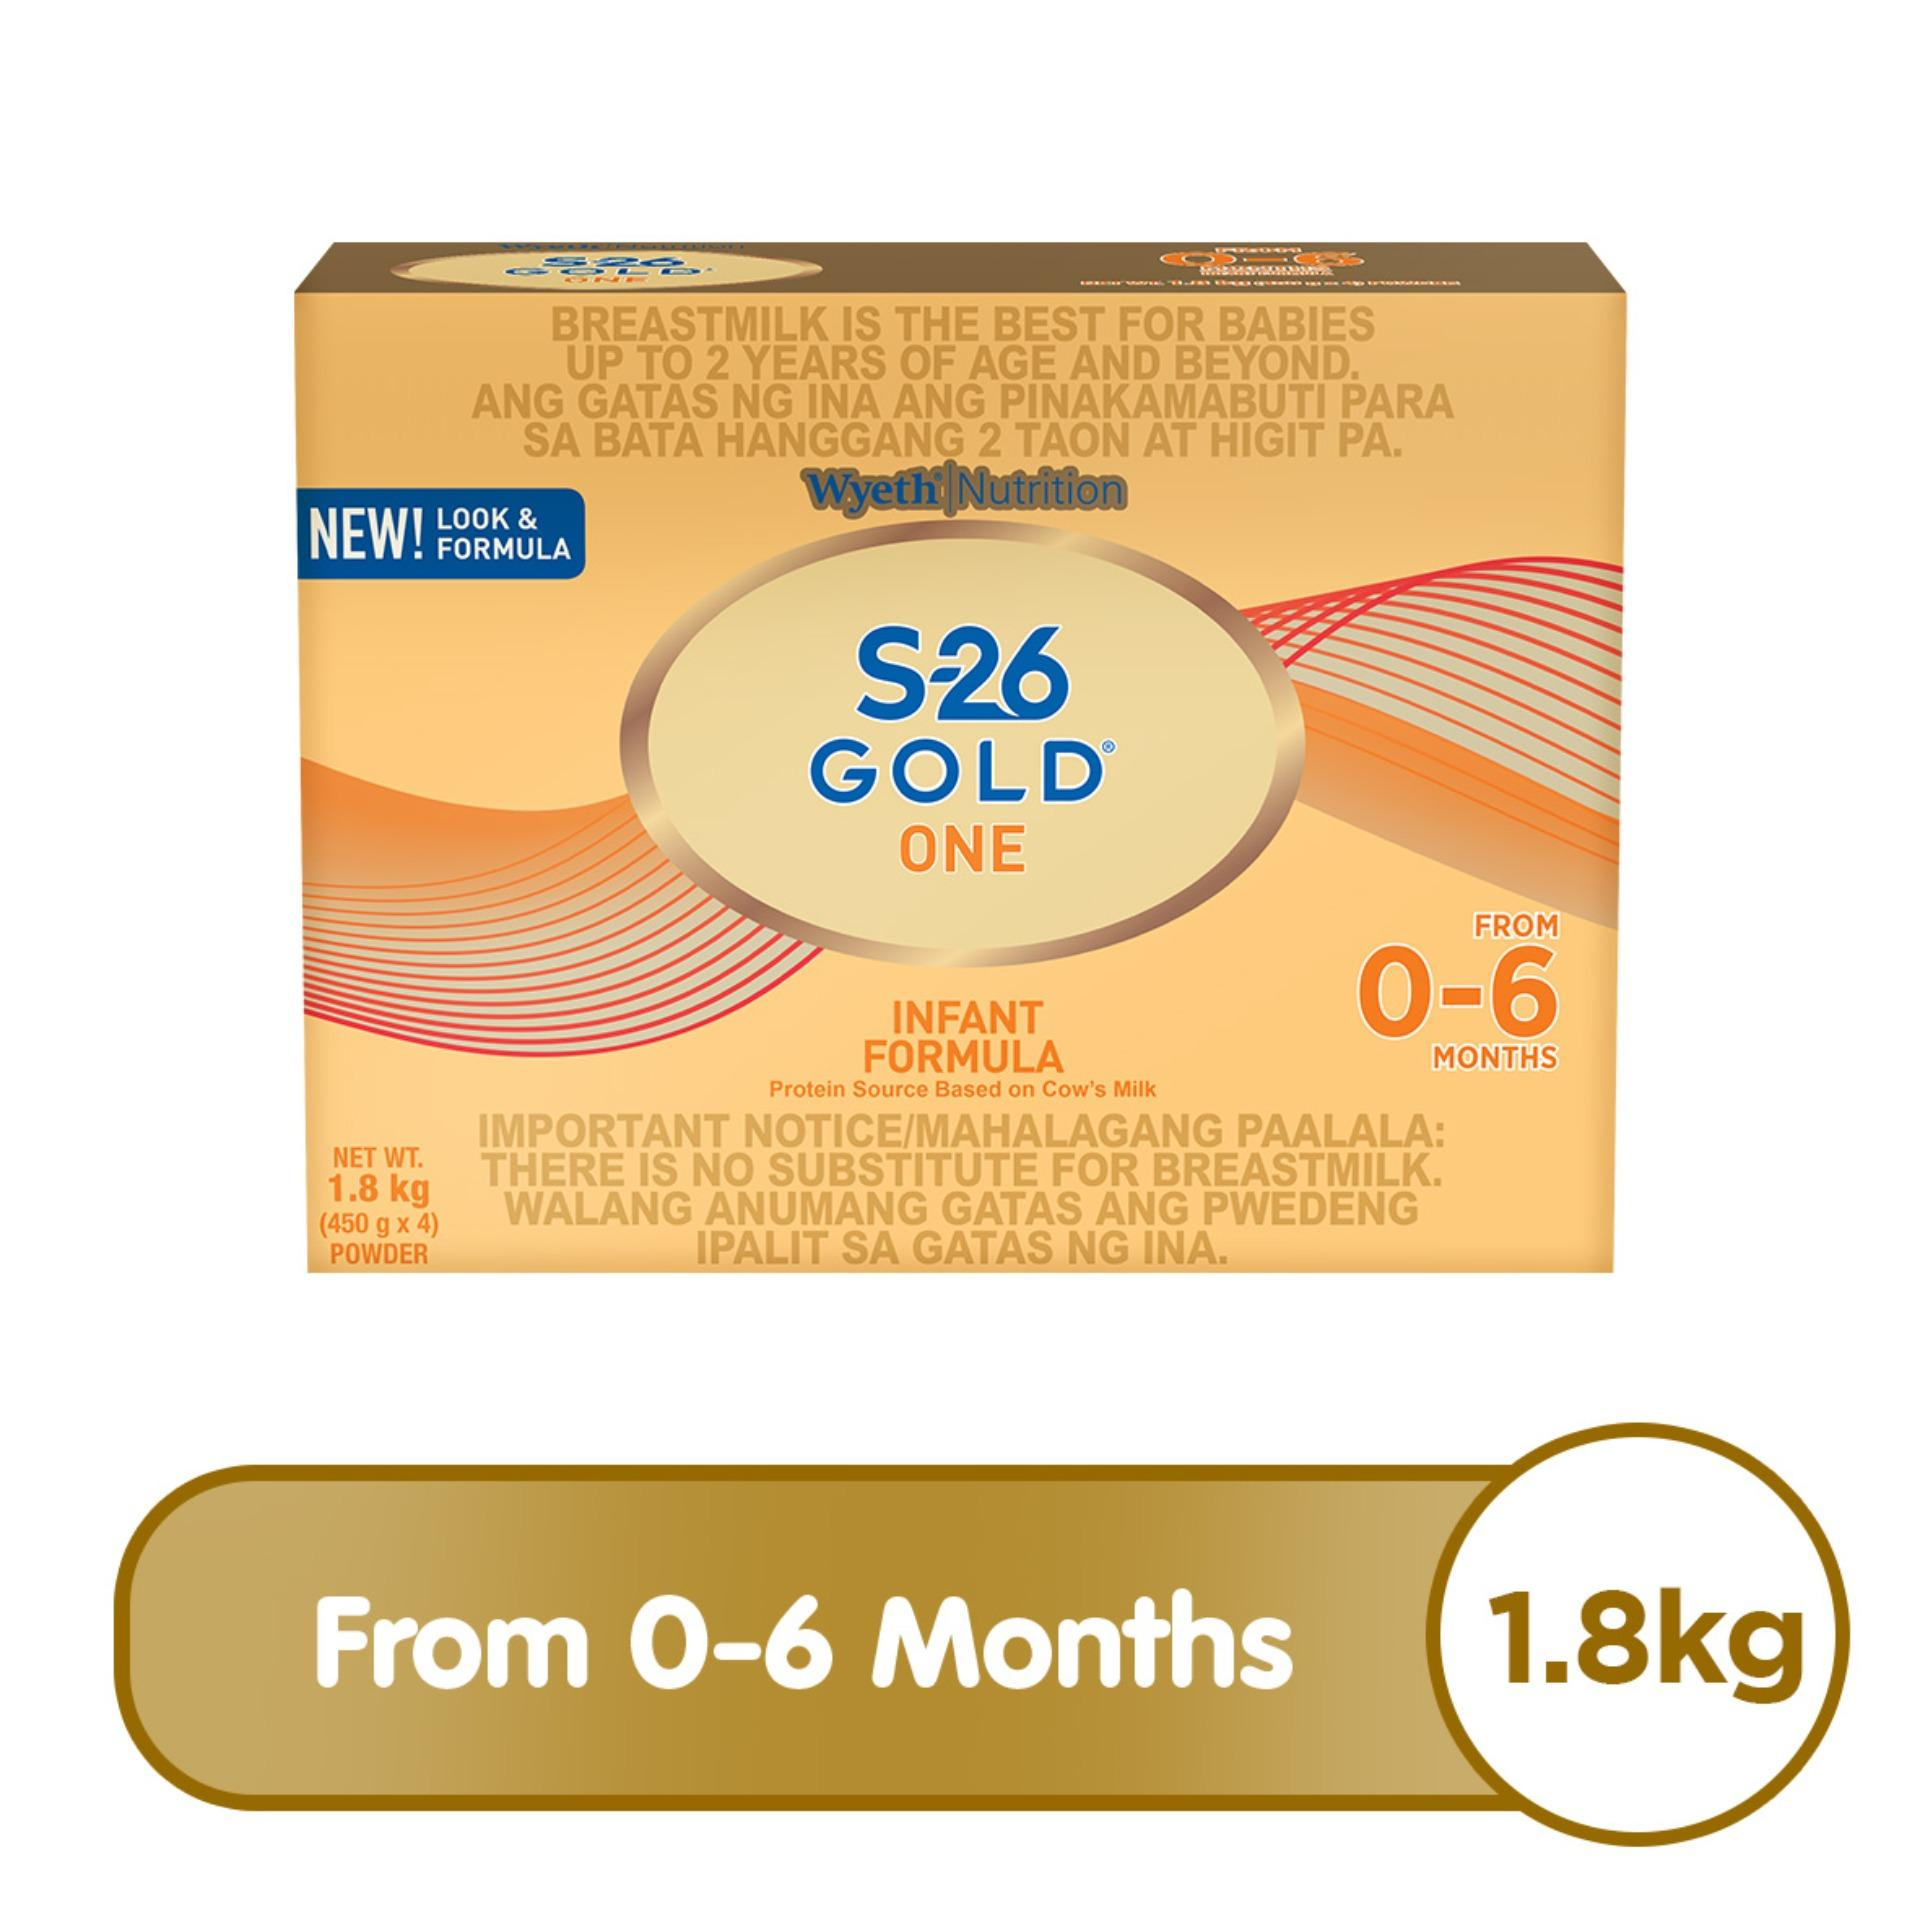 Wyeth® S-26 GOLD® ONE Infant Formula for 0-6 Months, Bag in Box, 1 8kg x 1